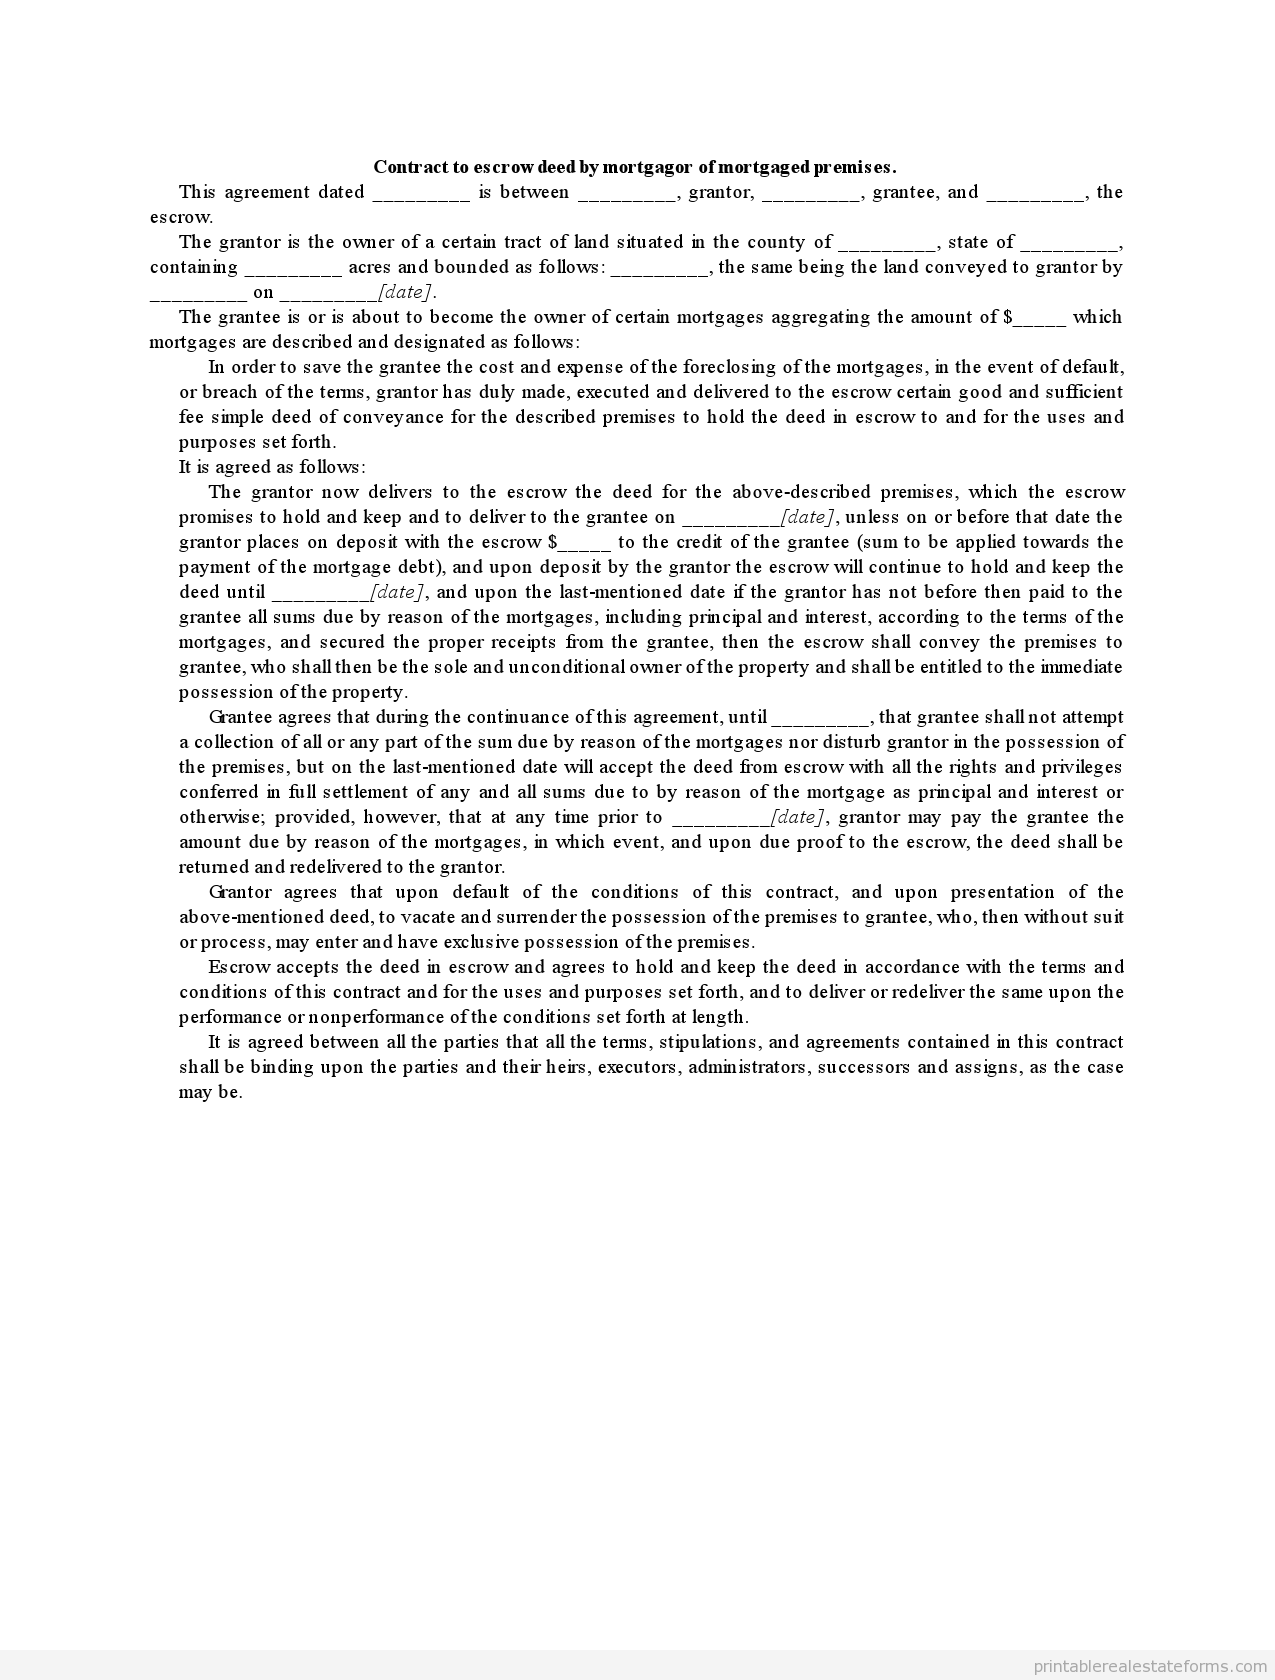 printable contract to escrow deed by mortgagor of mortgaged